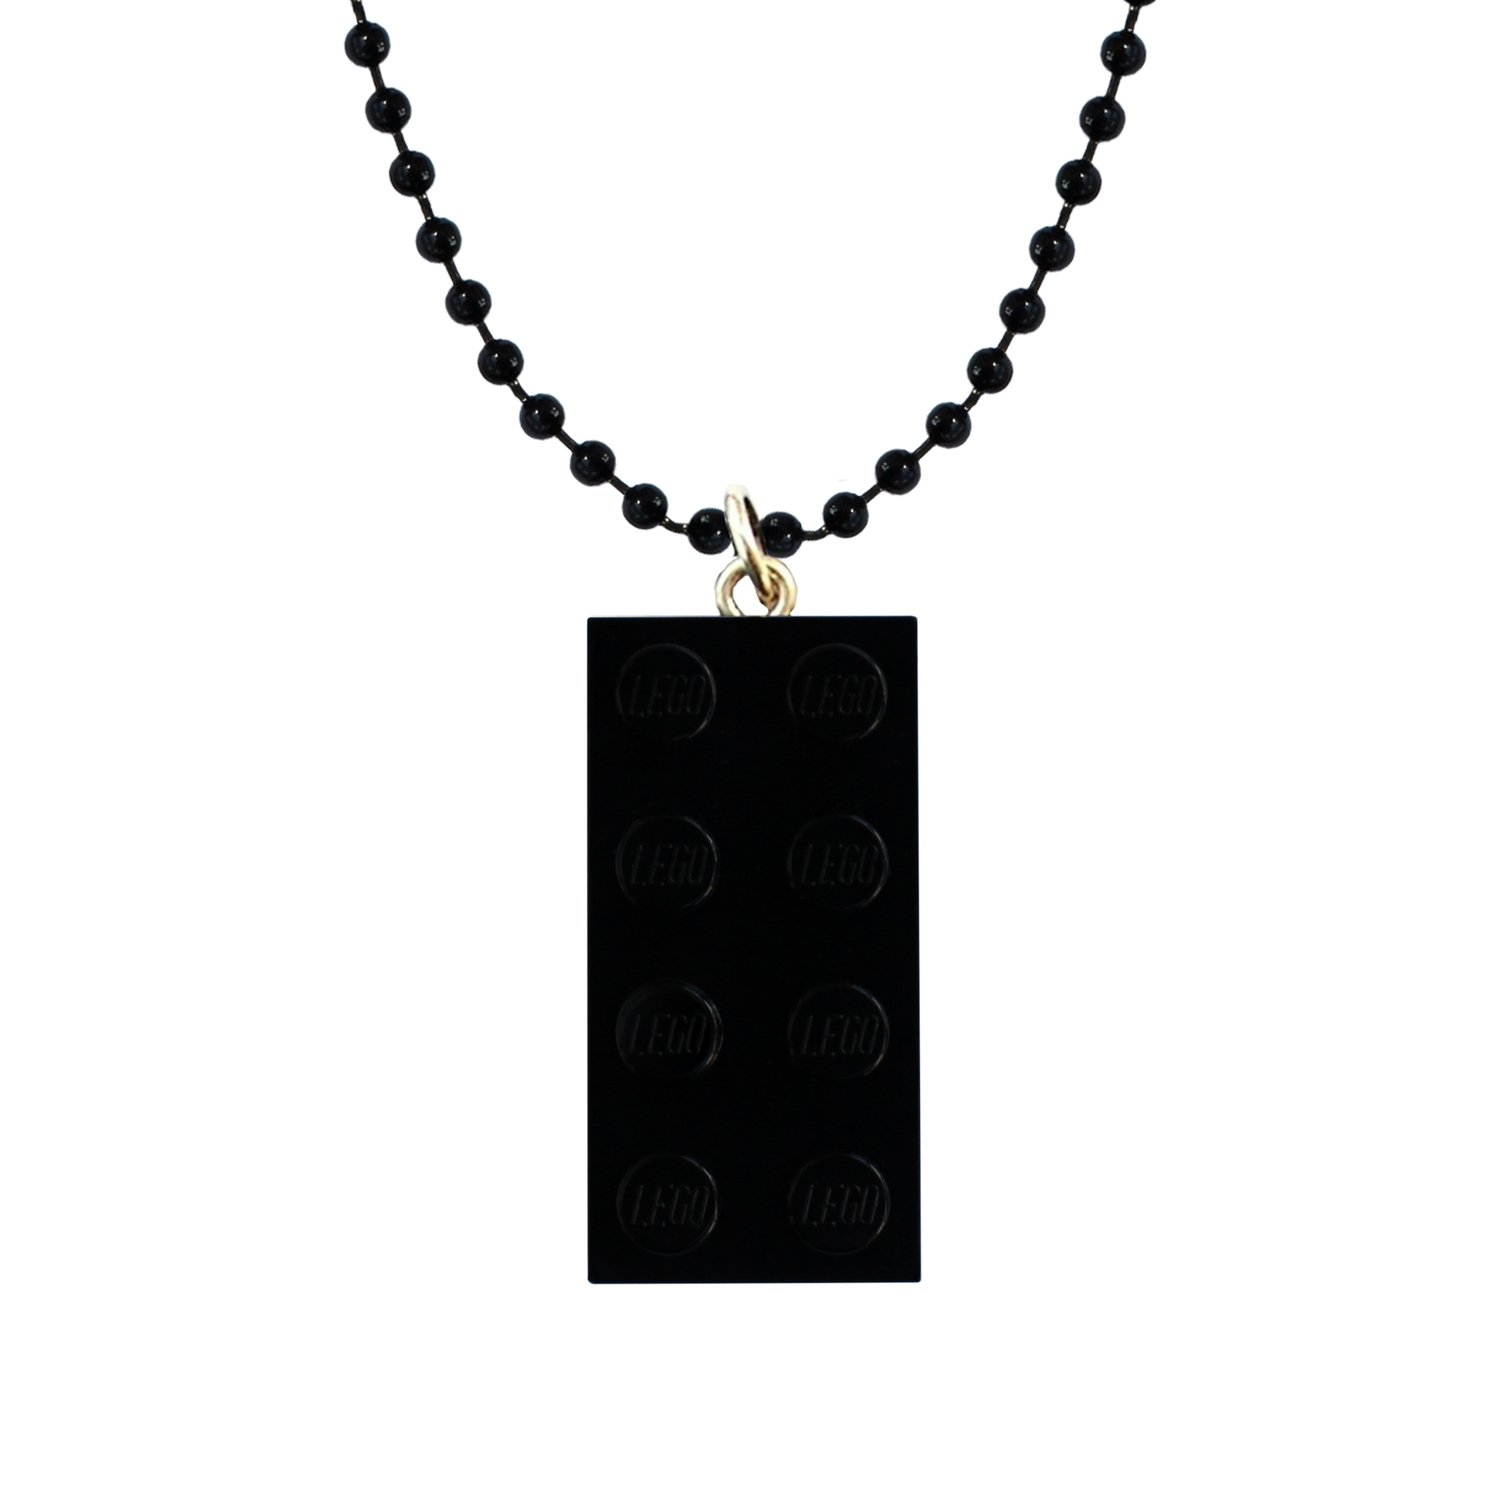 "Black LEGO® brick 2x4 on a 24"" Black ballchain"